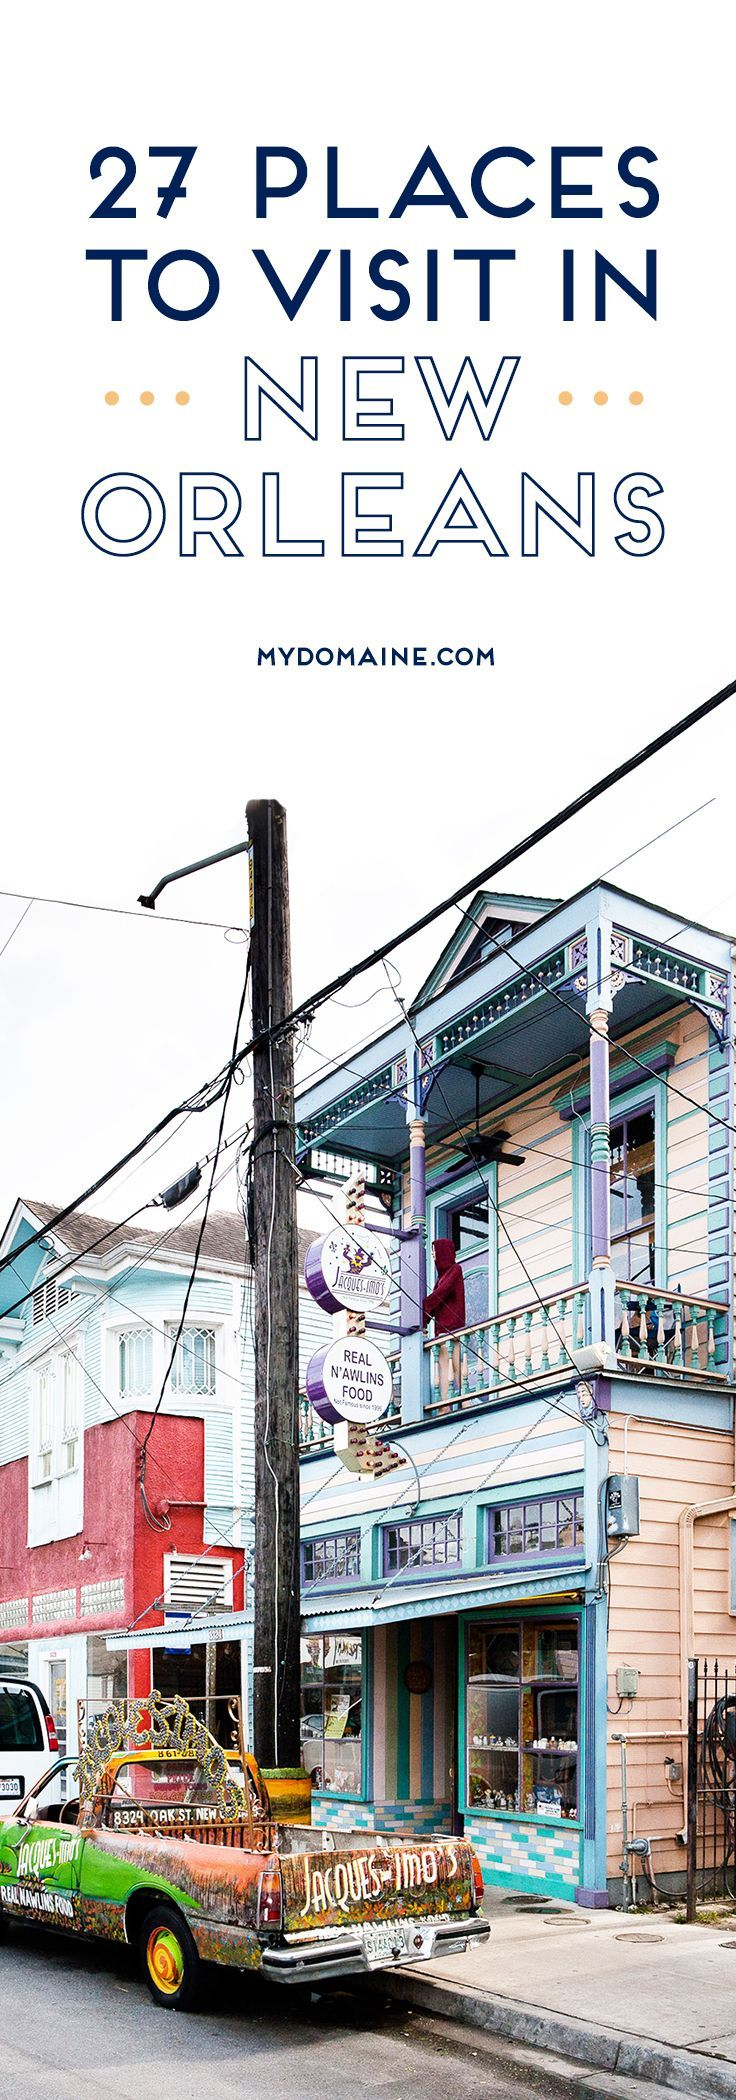 The only NOLA guide you'll ever need // New Orleans travel